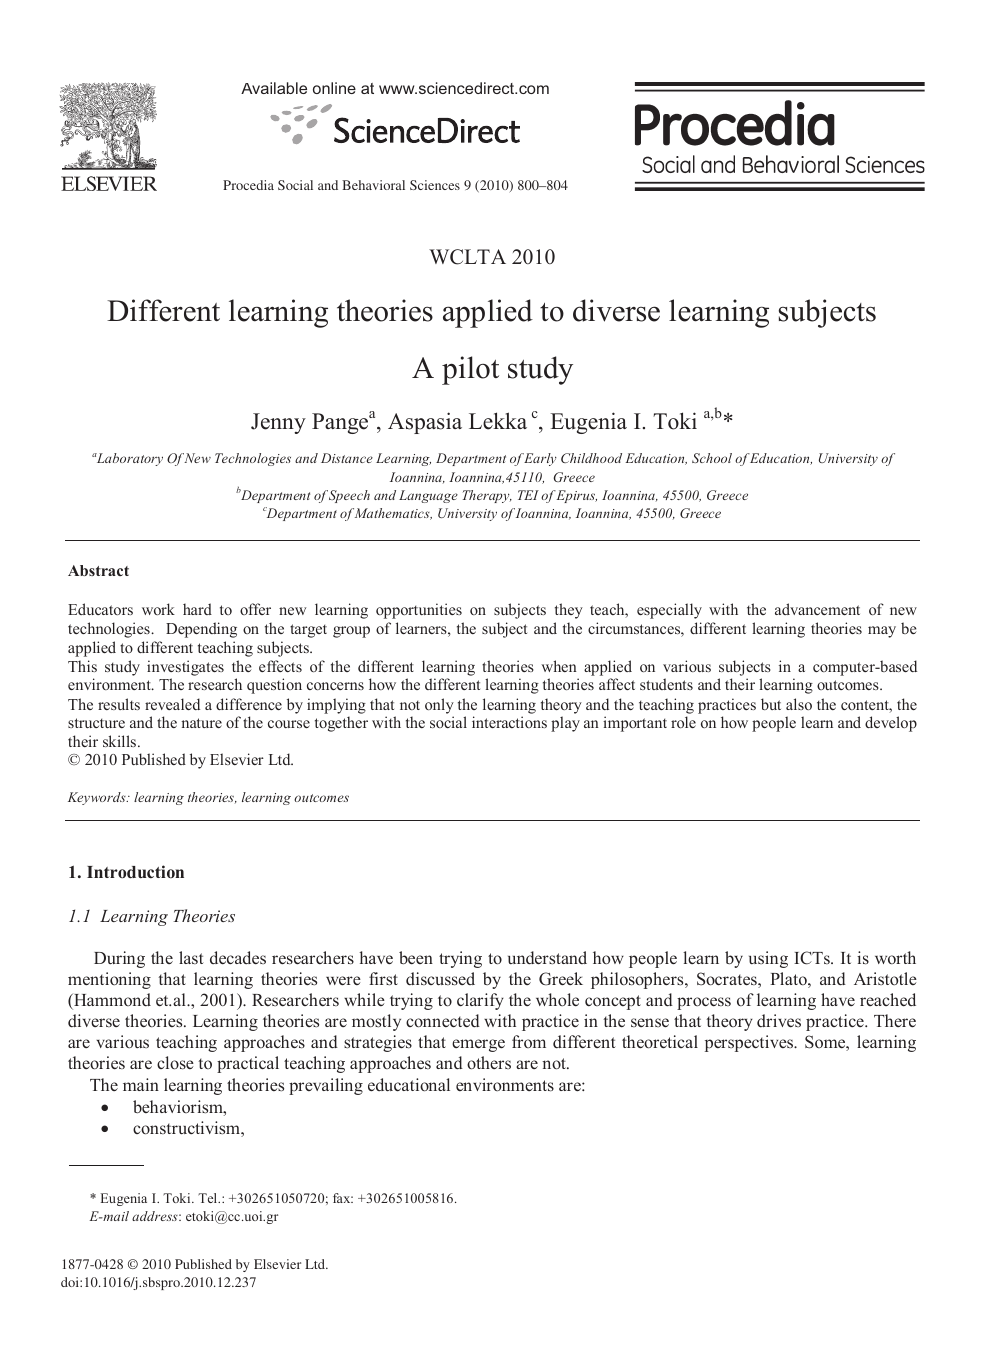 Different learning theories applied to diverse learning subjects A ... 76f5a289e6